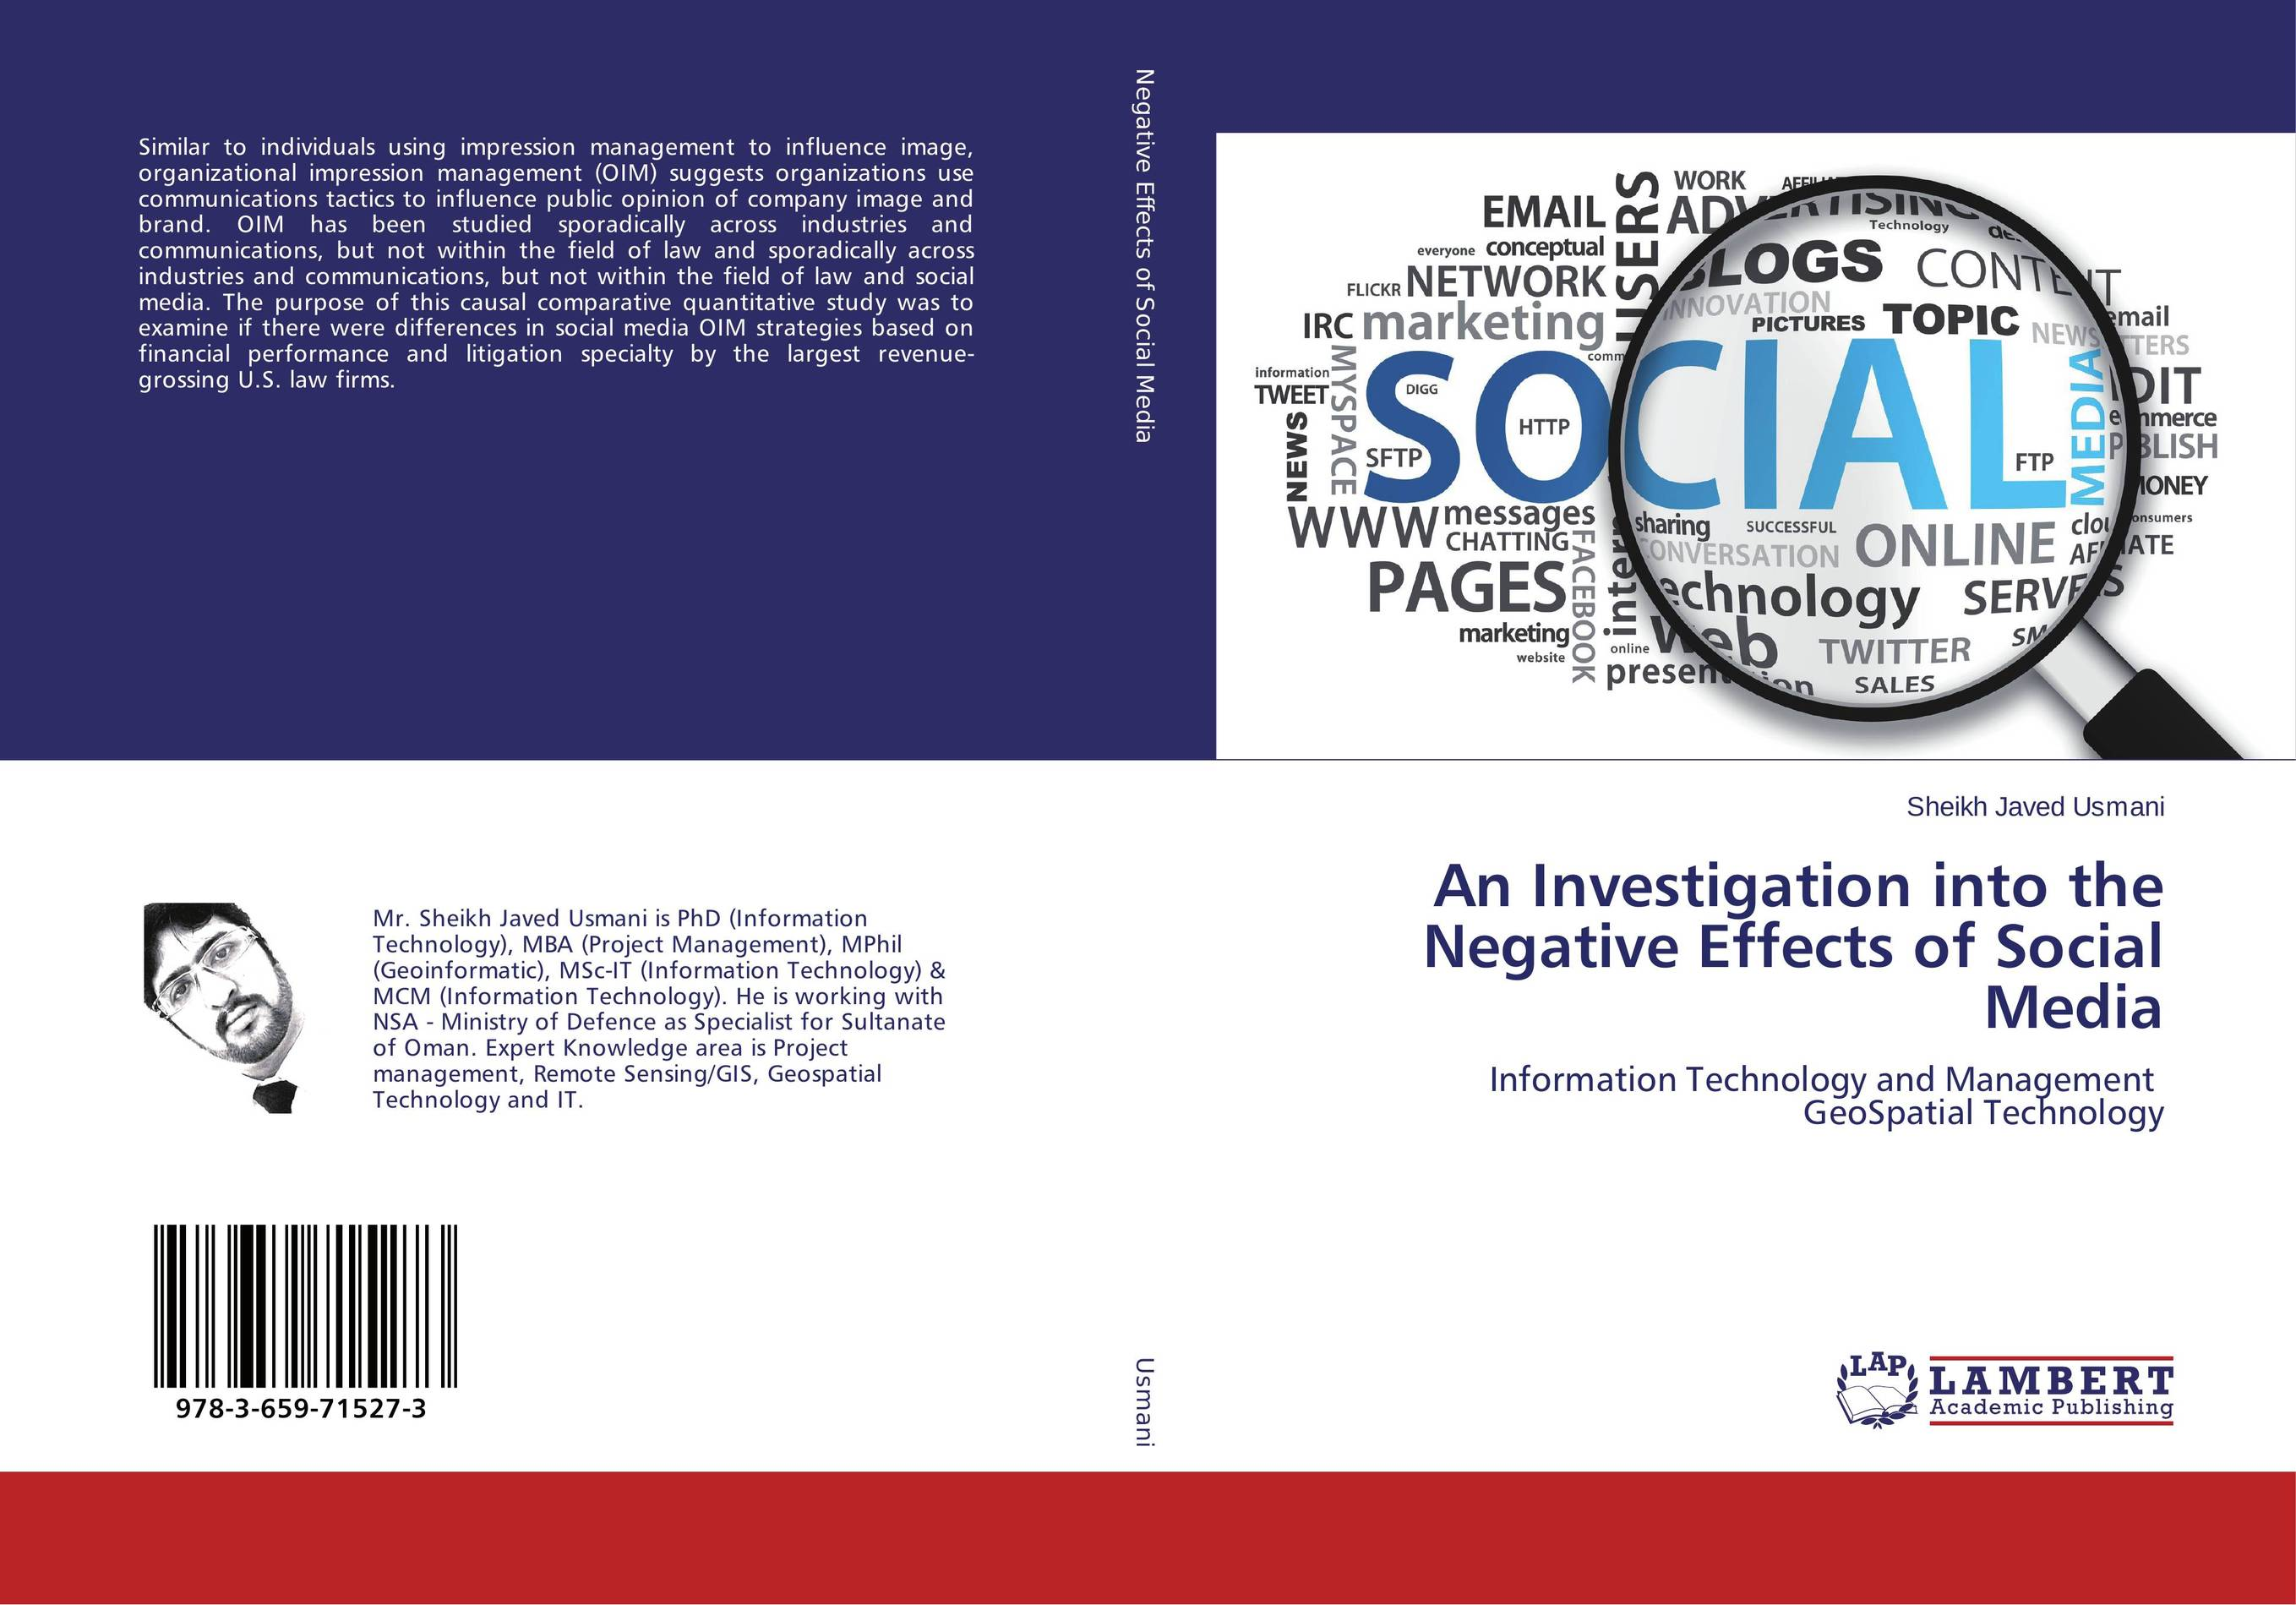 An Investigation into the Negative Effects of Social Media revenue law